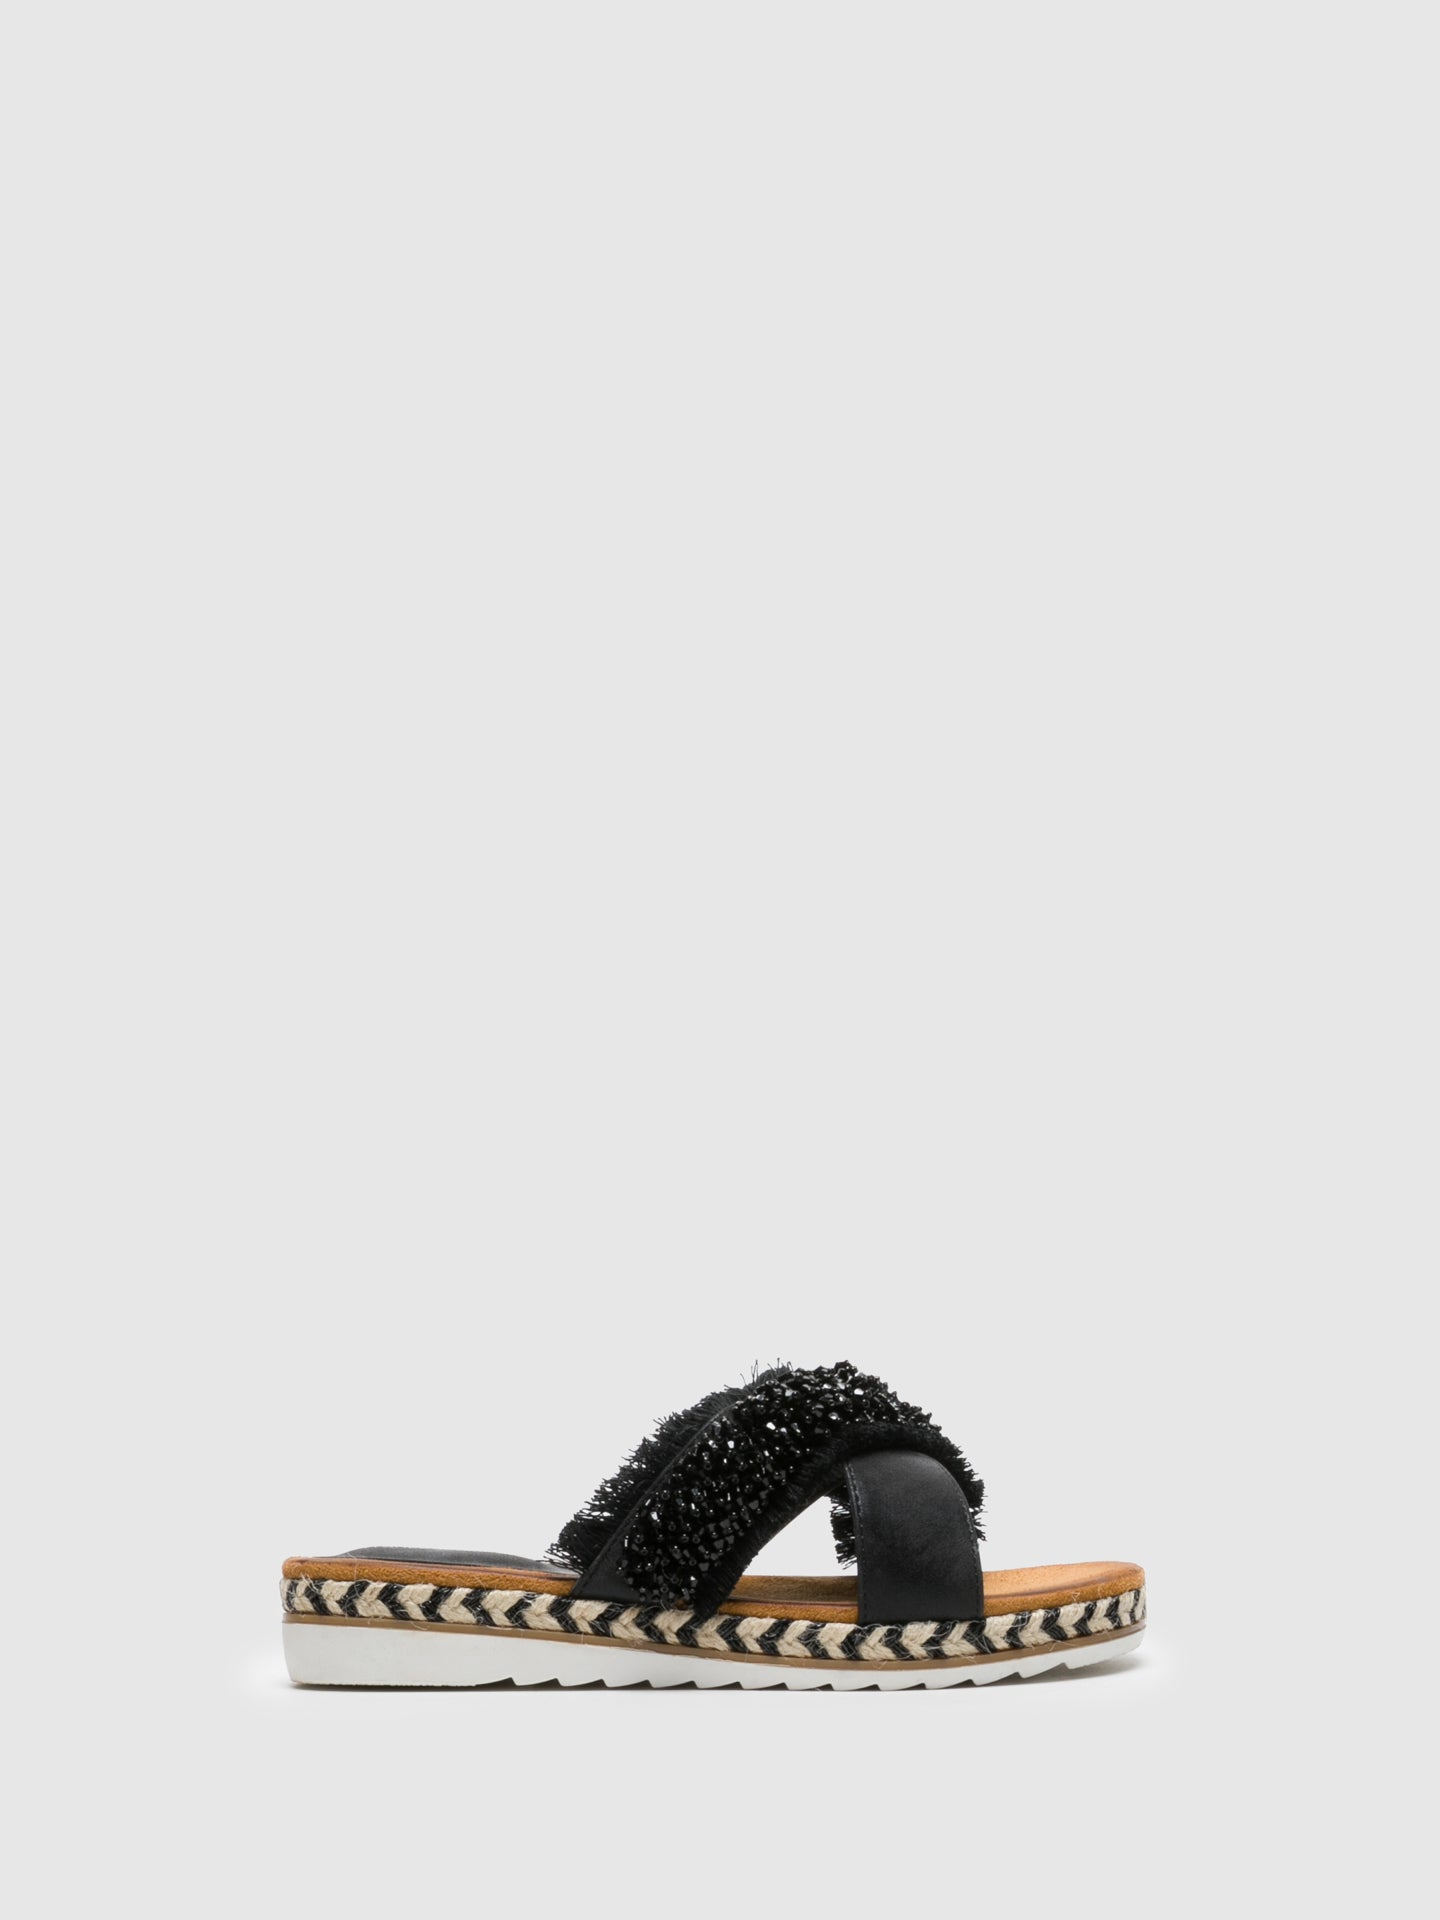 FRANCESCO MILANO Black Appliqués Flip-Flops